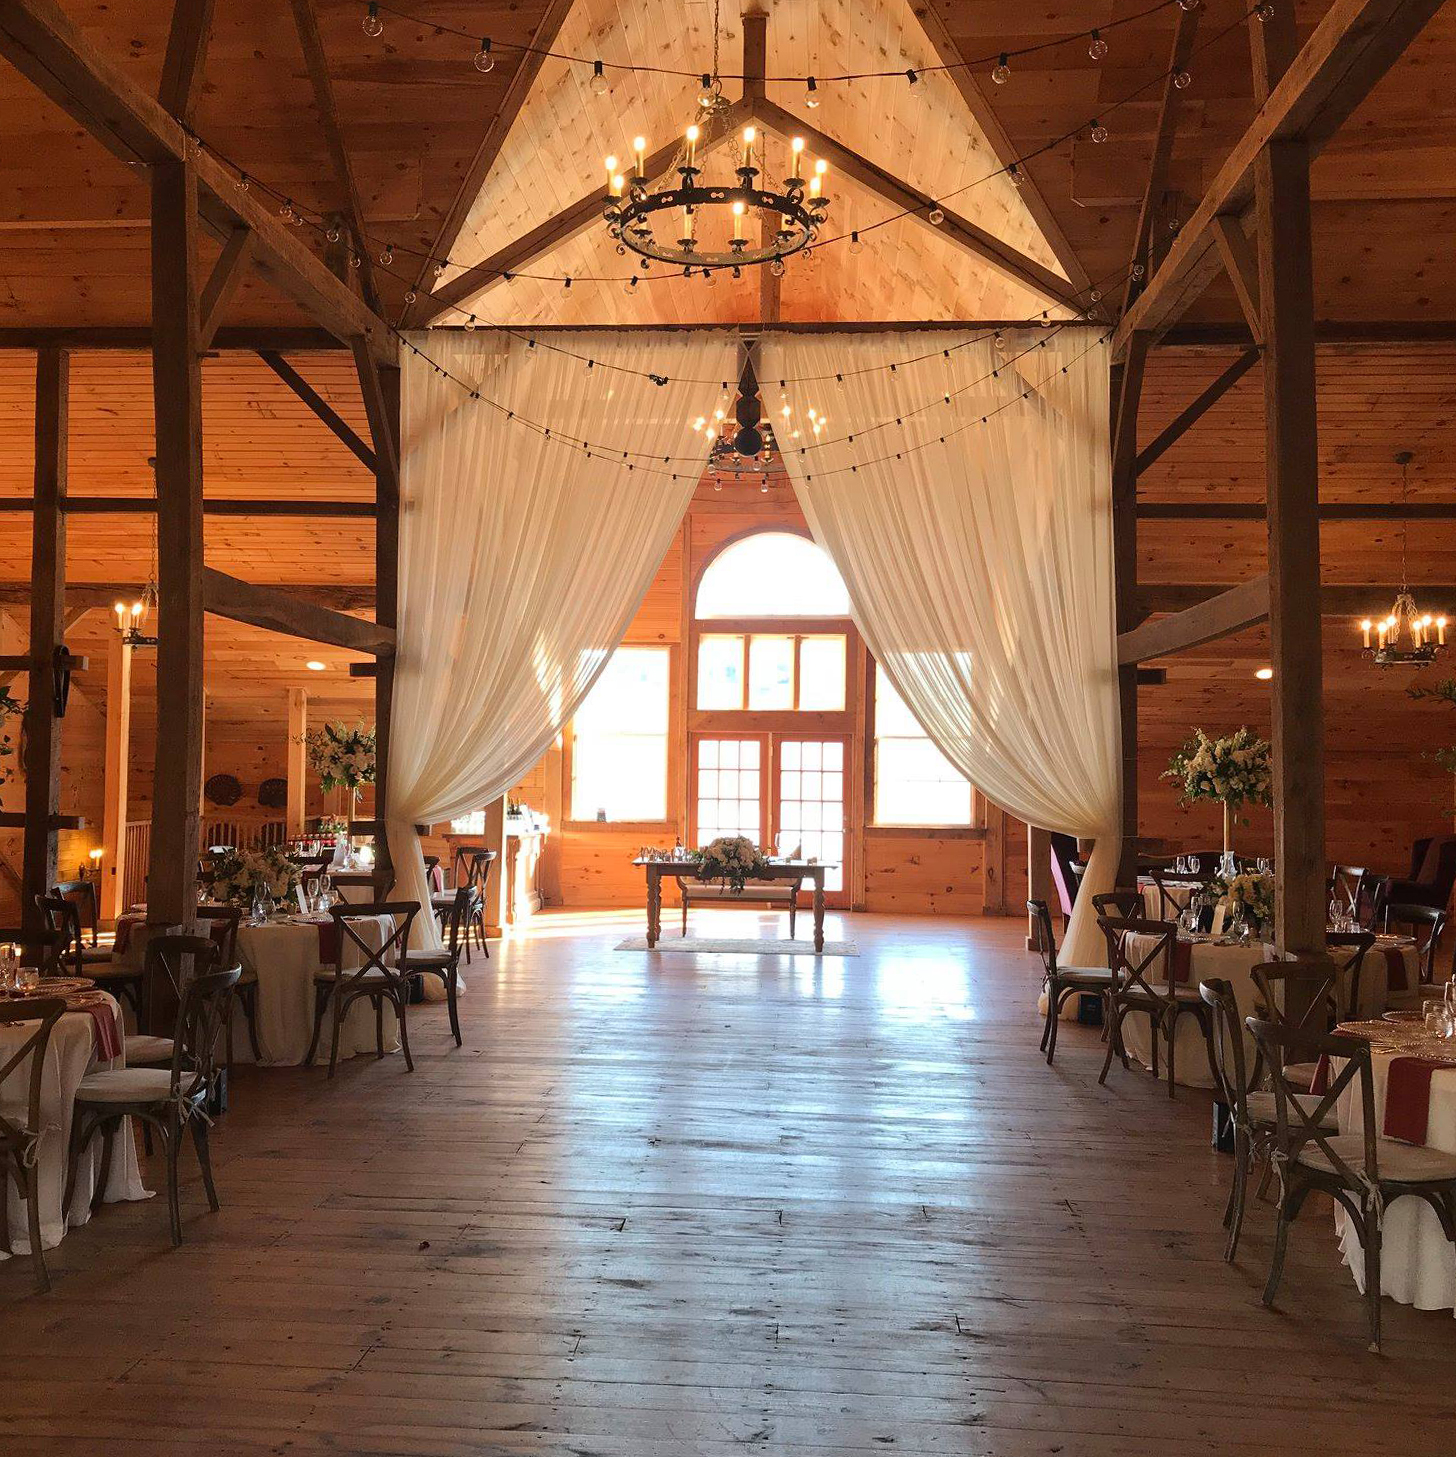 Maryland Barn Wedding: About Stone Ridge Hollow Barn Wedding, Party And Event